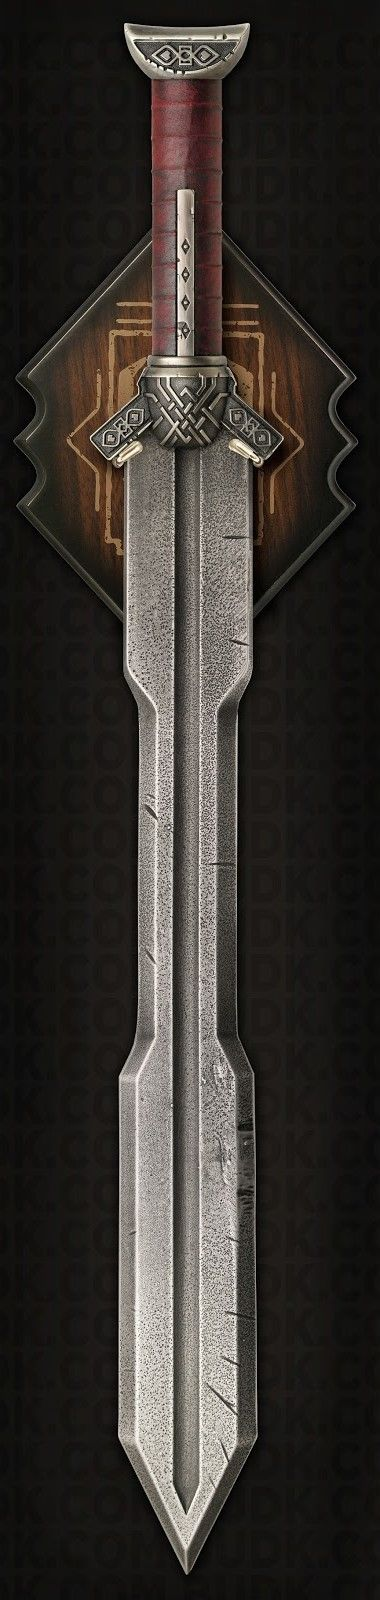 Kili's awesome sword. I'm getting pretty lightheaded here. Don't mind me...